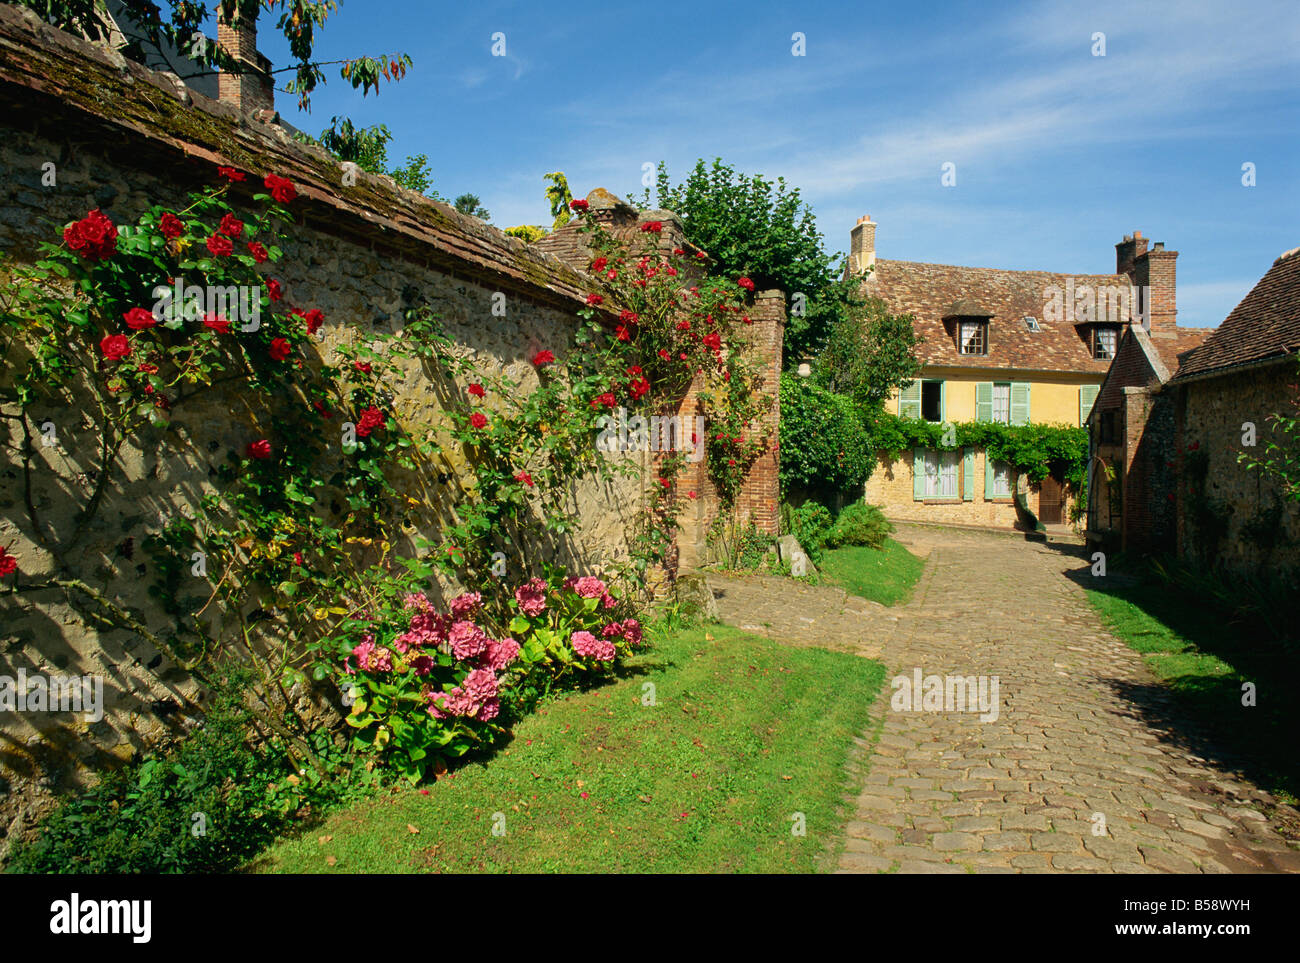 Geberoy, Picardy, France, Europe Stock Photo